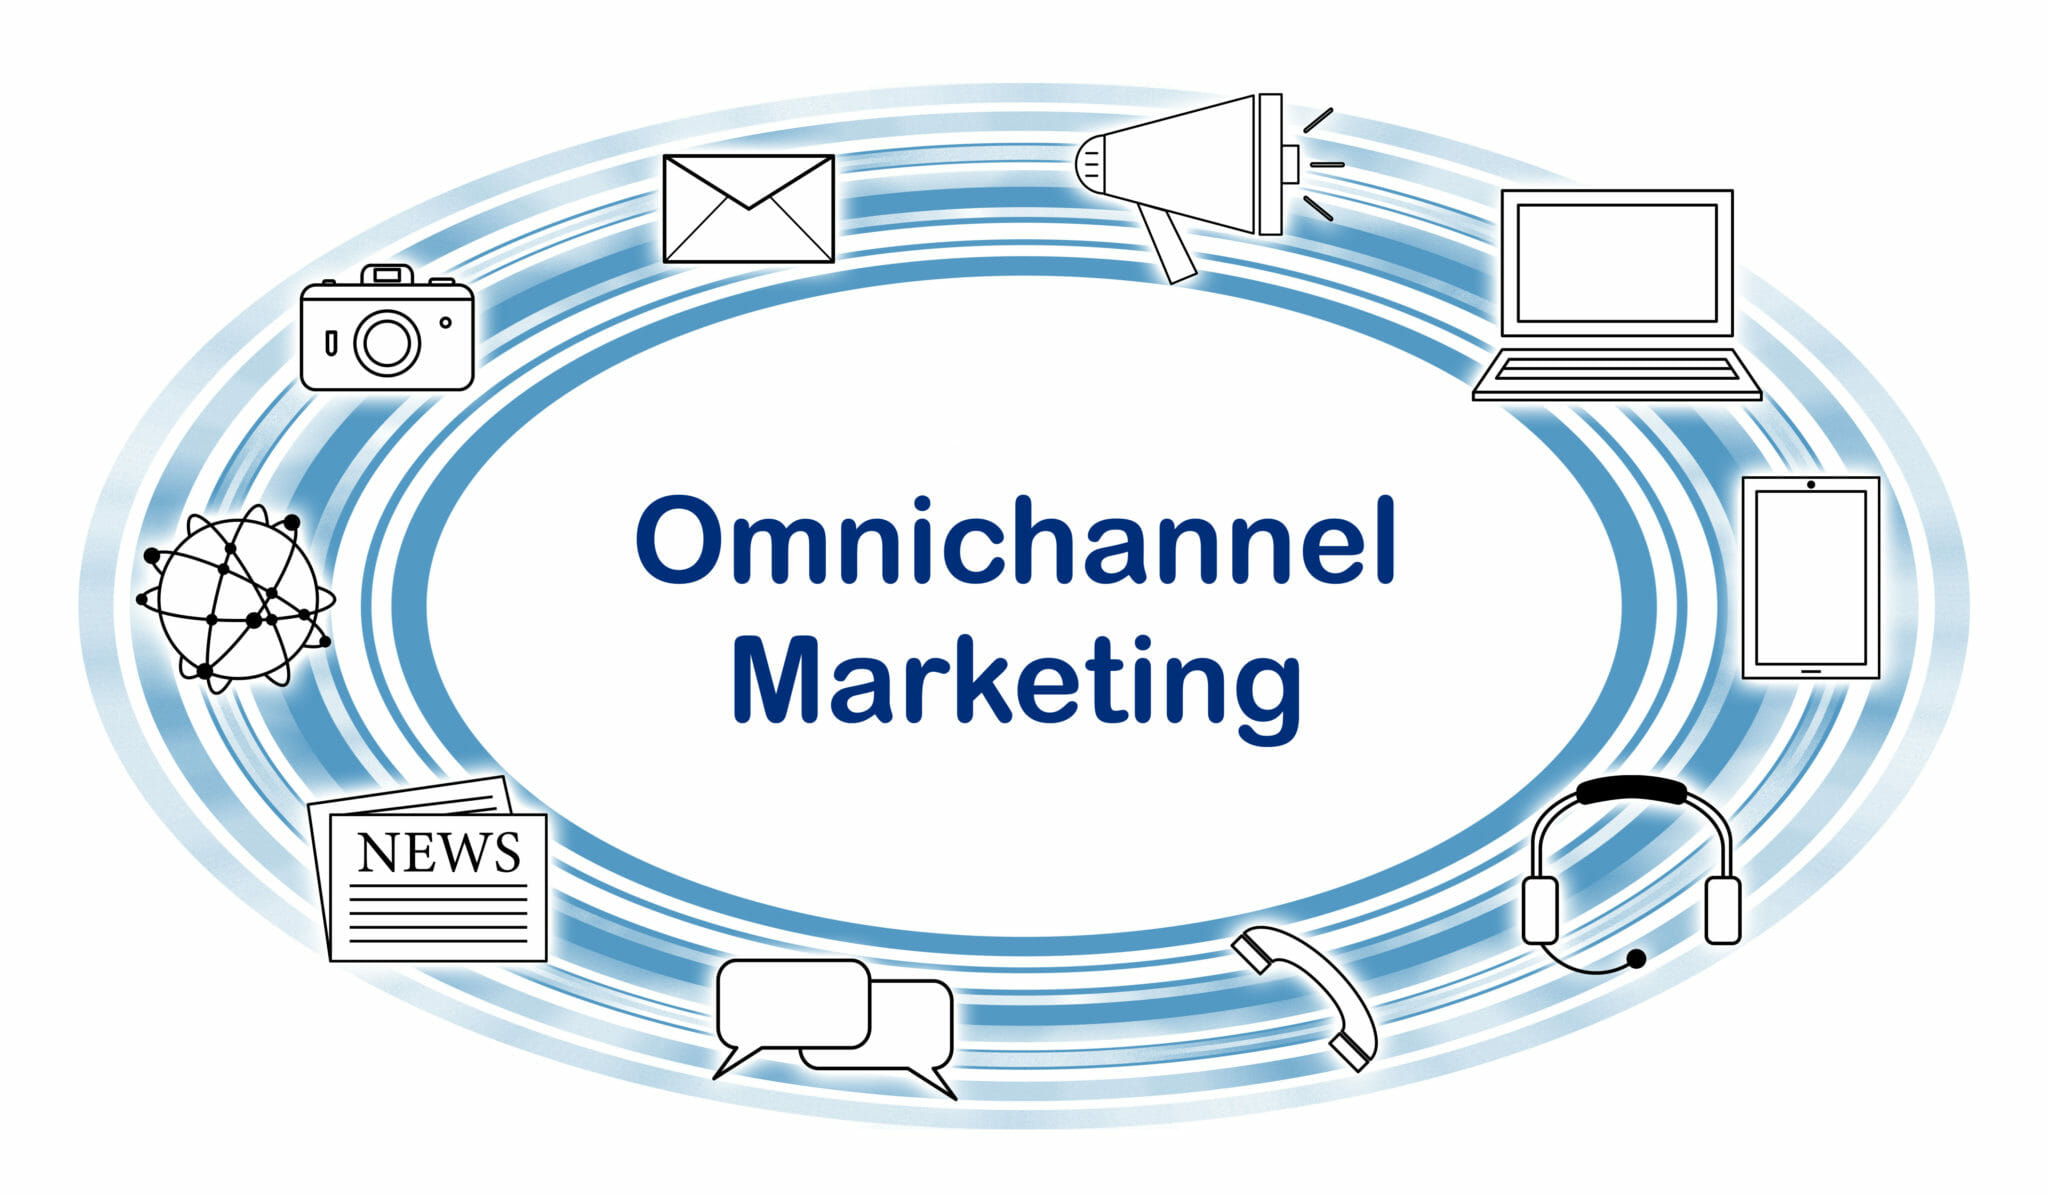 Omnichannel Marketing: Using the Content Sprout Method to Overcome